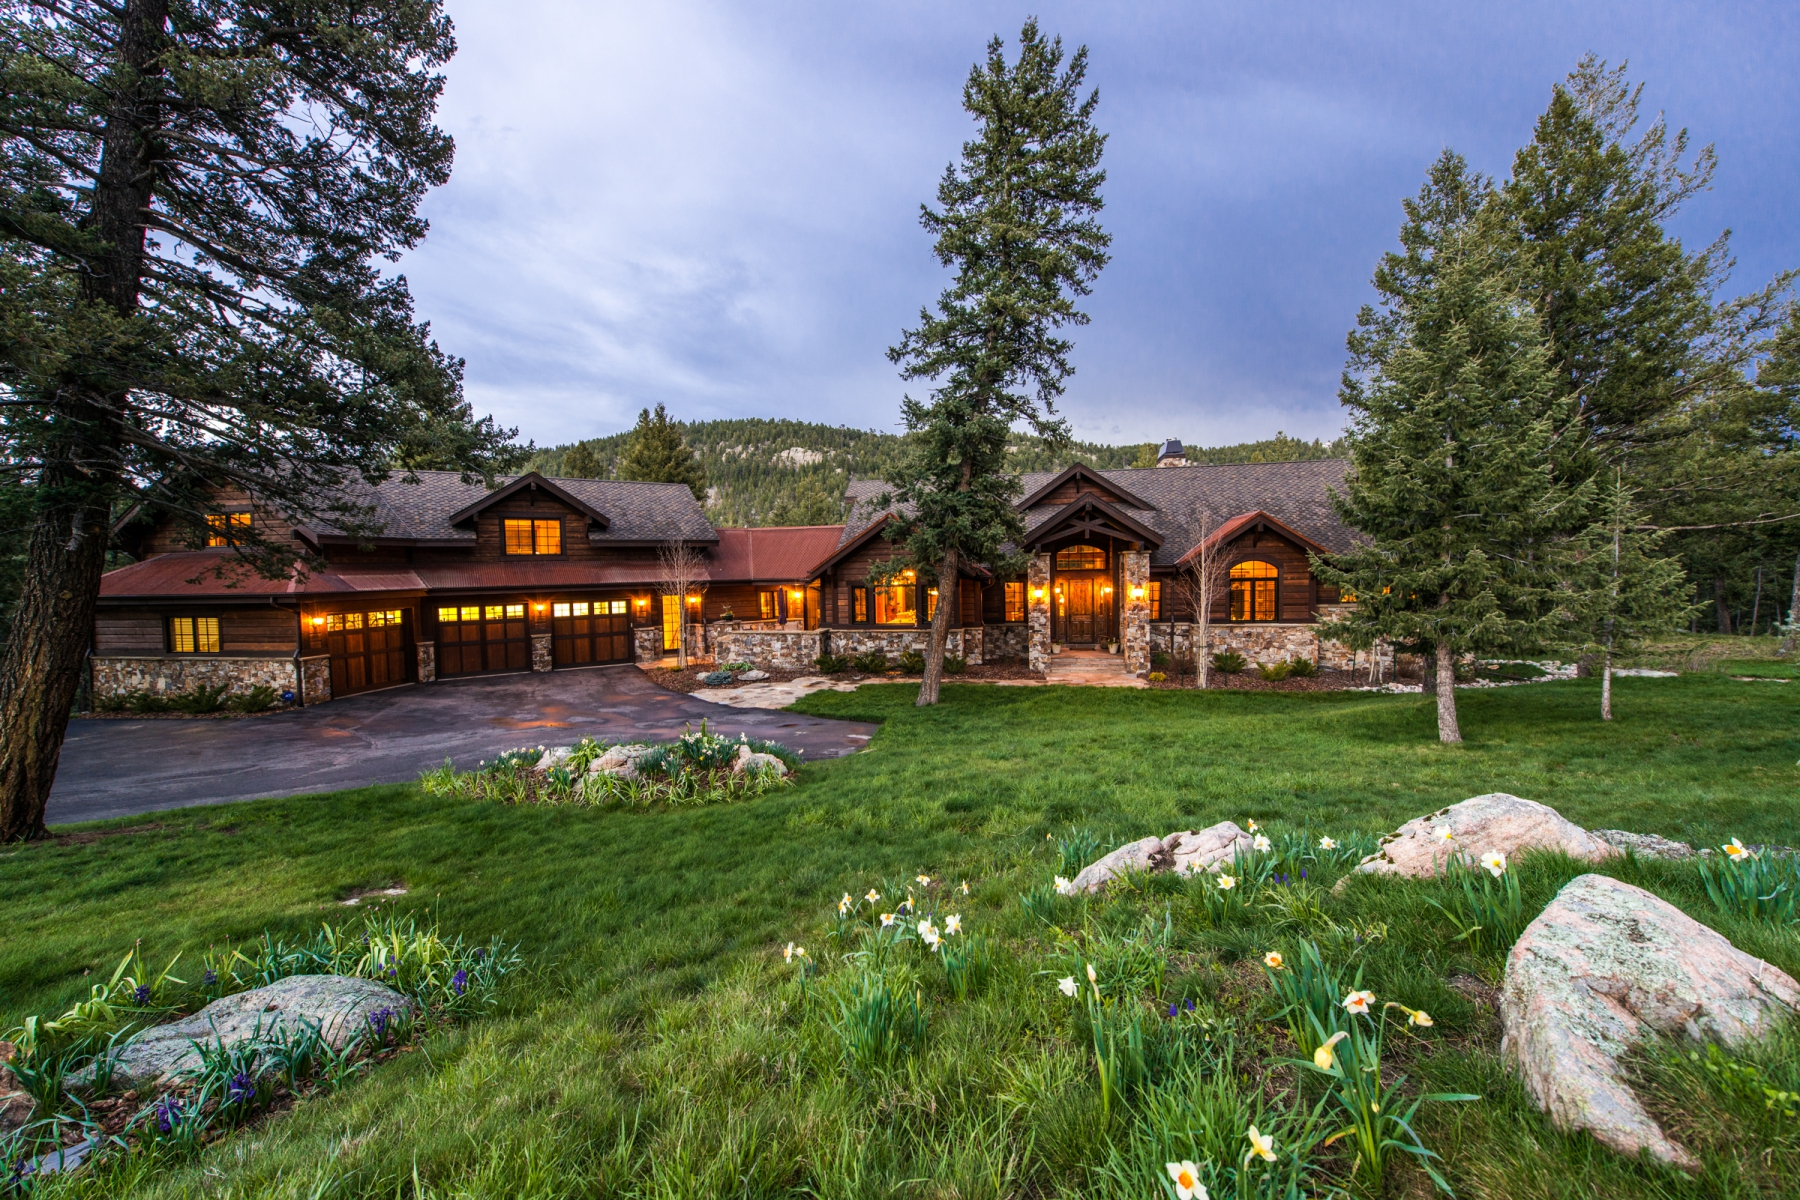 Single Family Home for Sale at Elegant Living at Cub Creek Ranch 6096 Stone Creek Drive Evergreen, Colorado 80439 United States